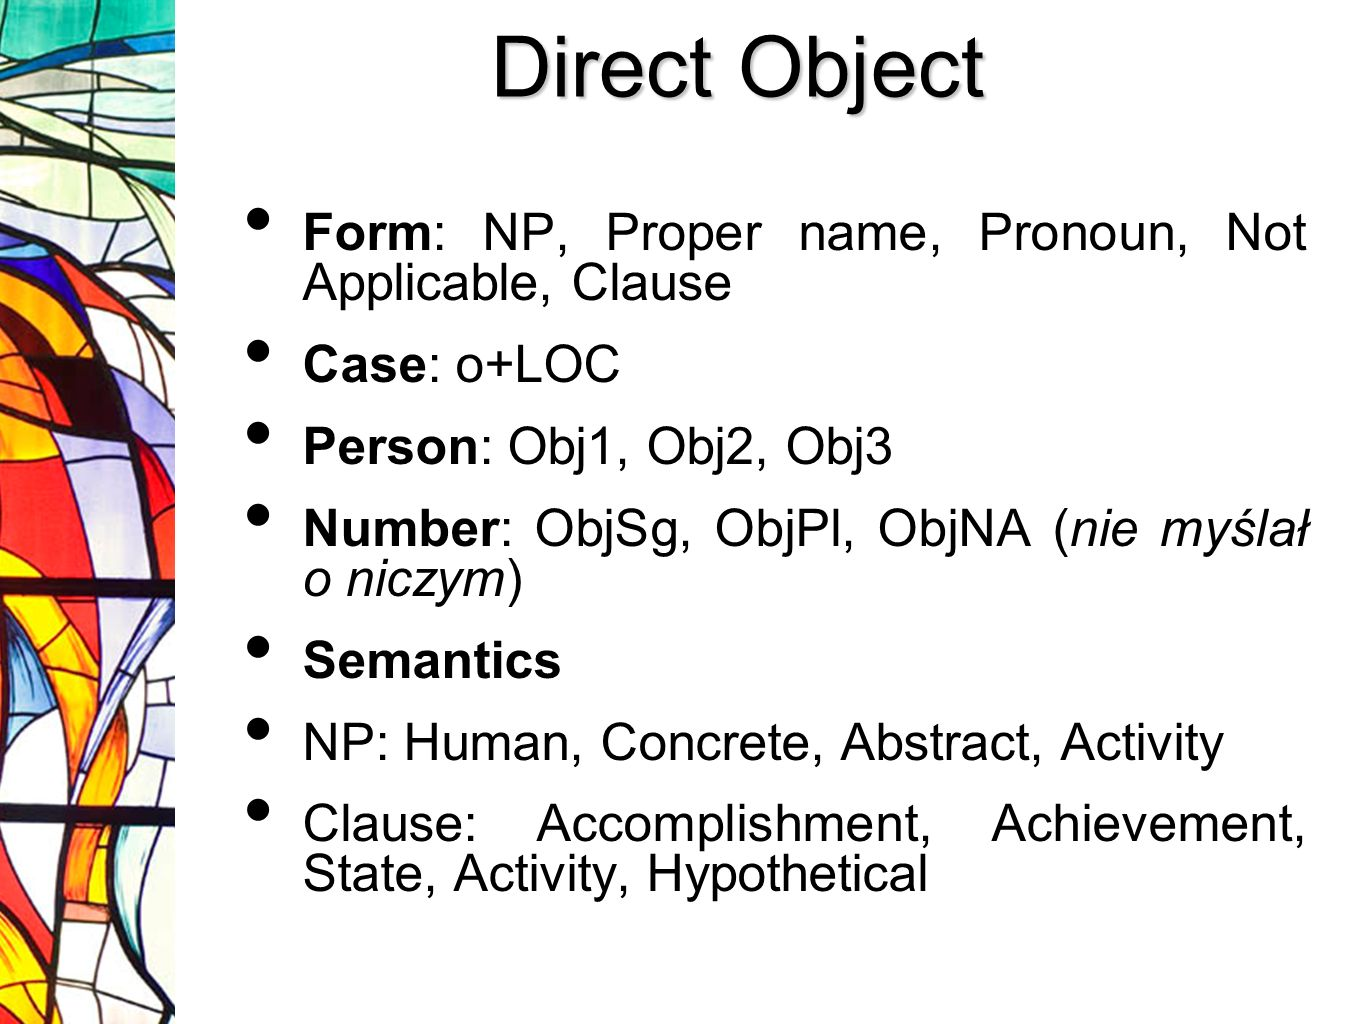 Direct Object Form: NP, Proper name, Pronoun, Not Applicable, Clause